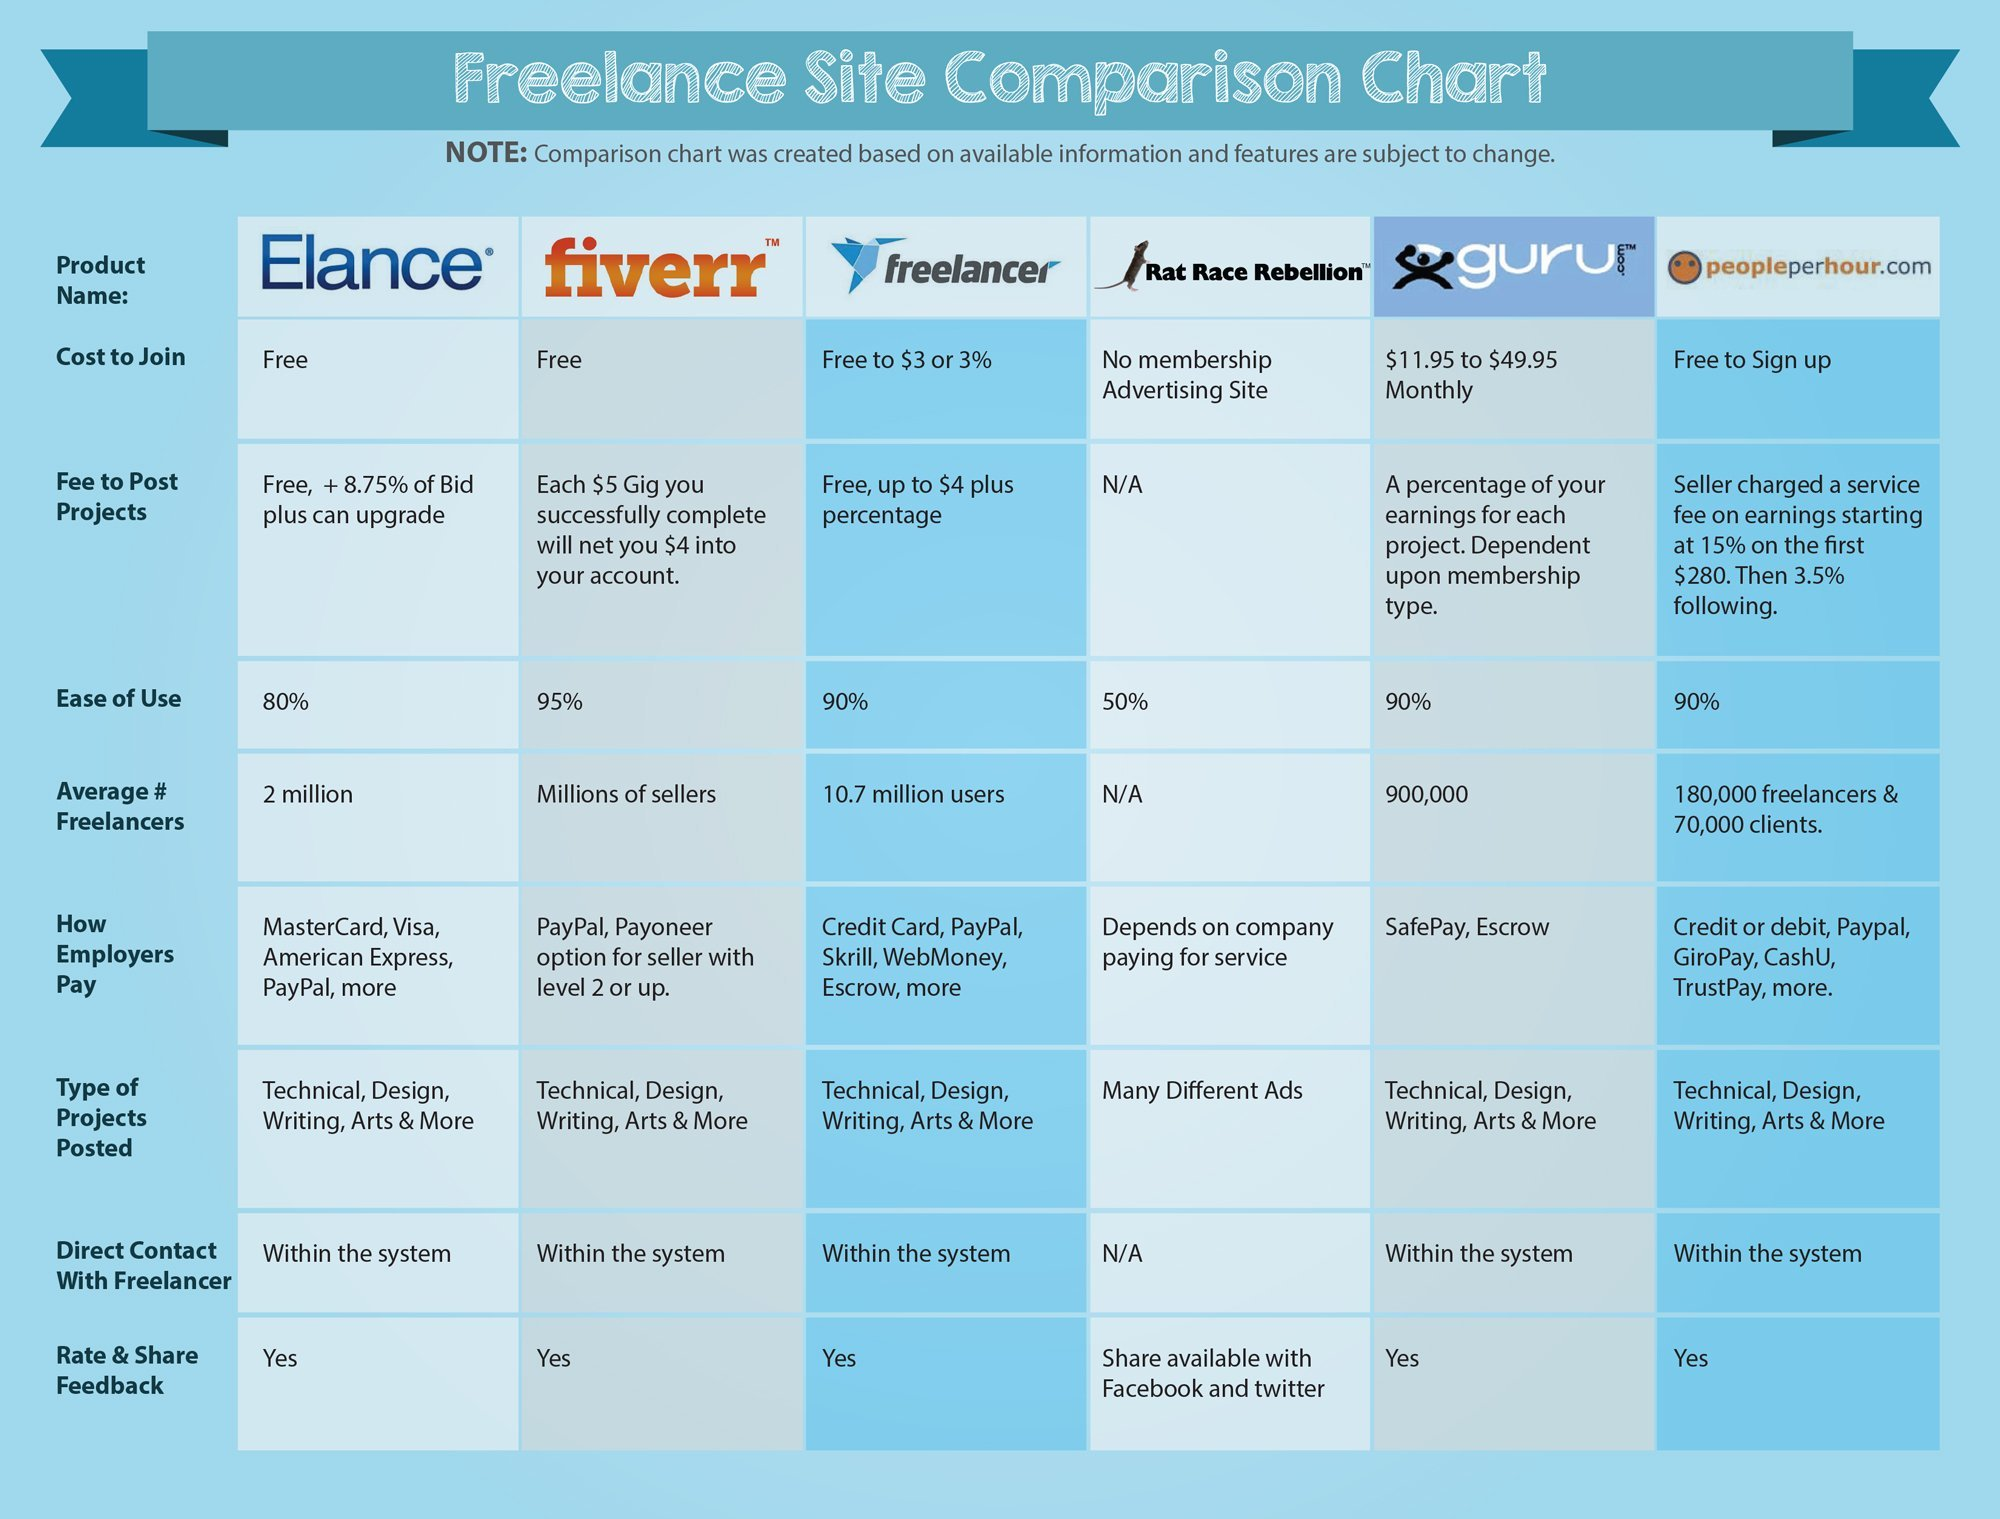 FreelanceSiteComparison